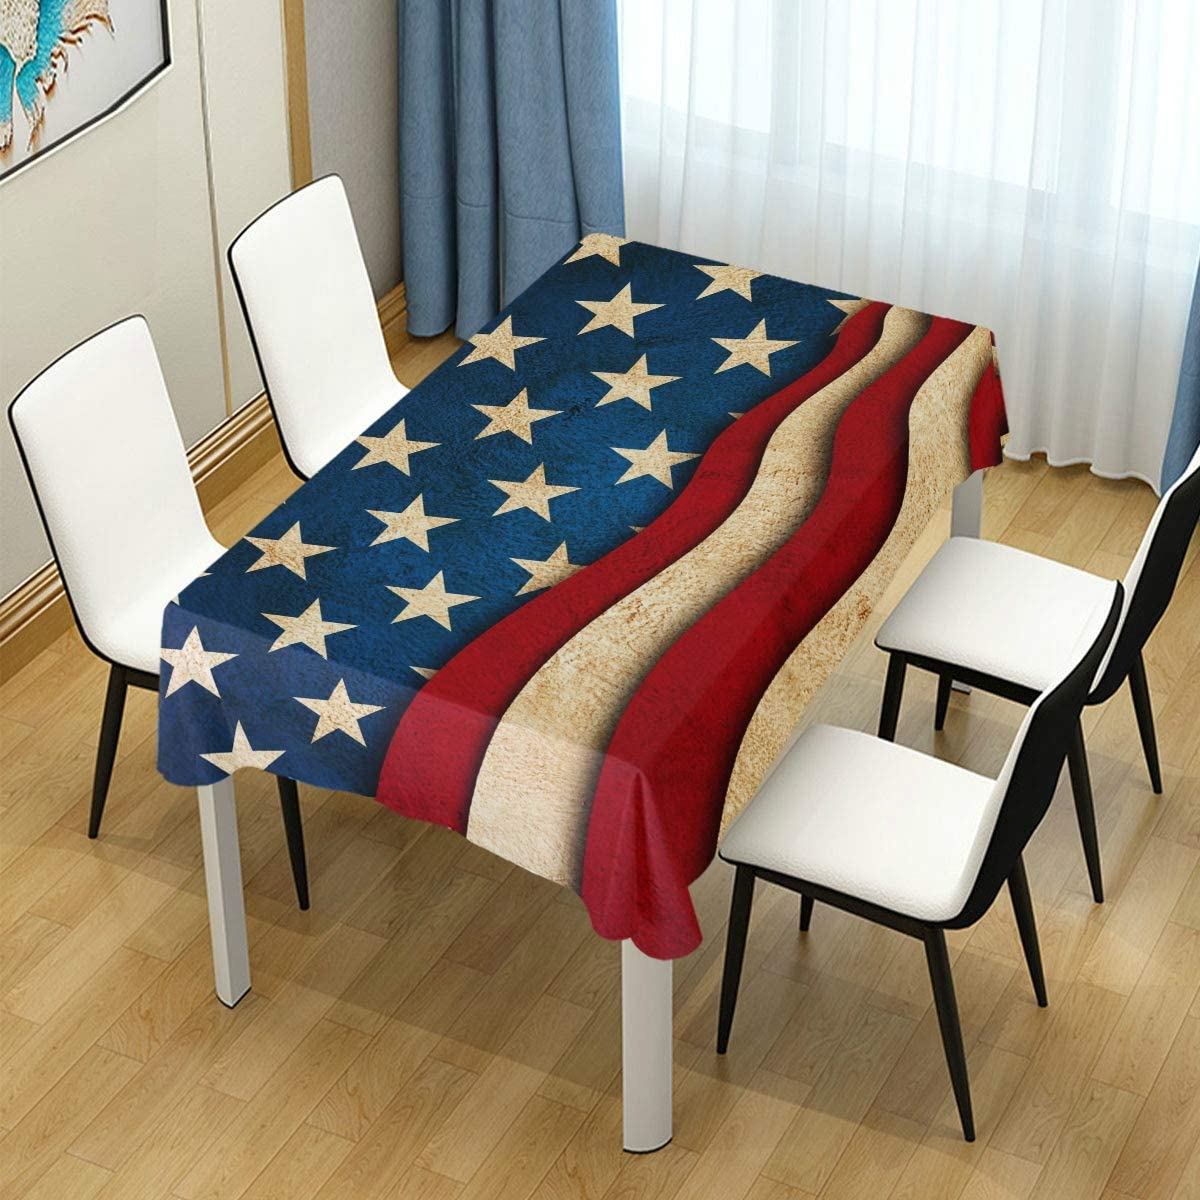 Naanle American Flag Star | Picnic Table Clothes